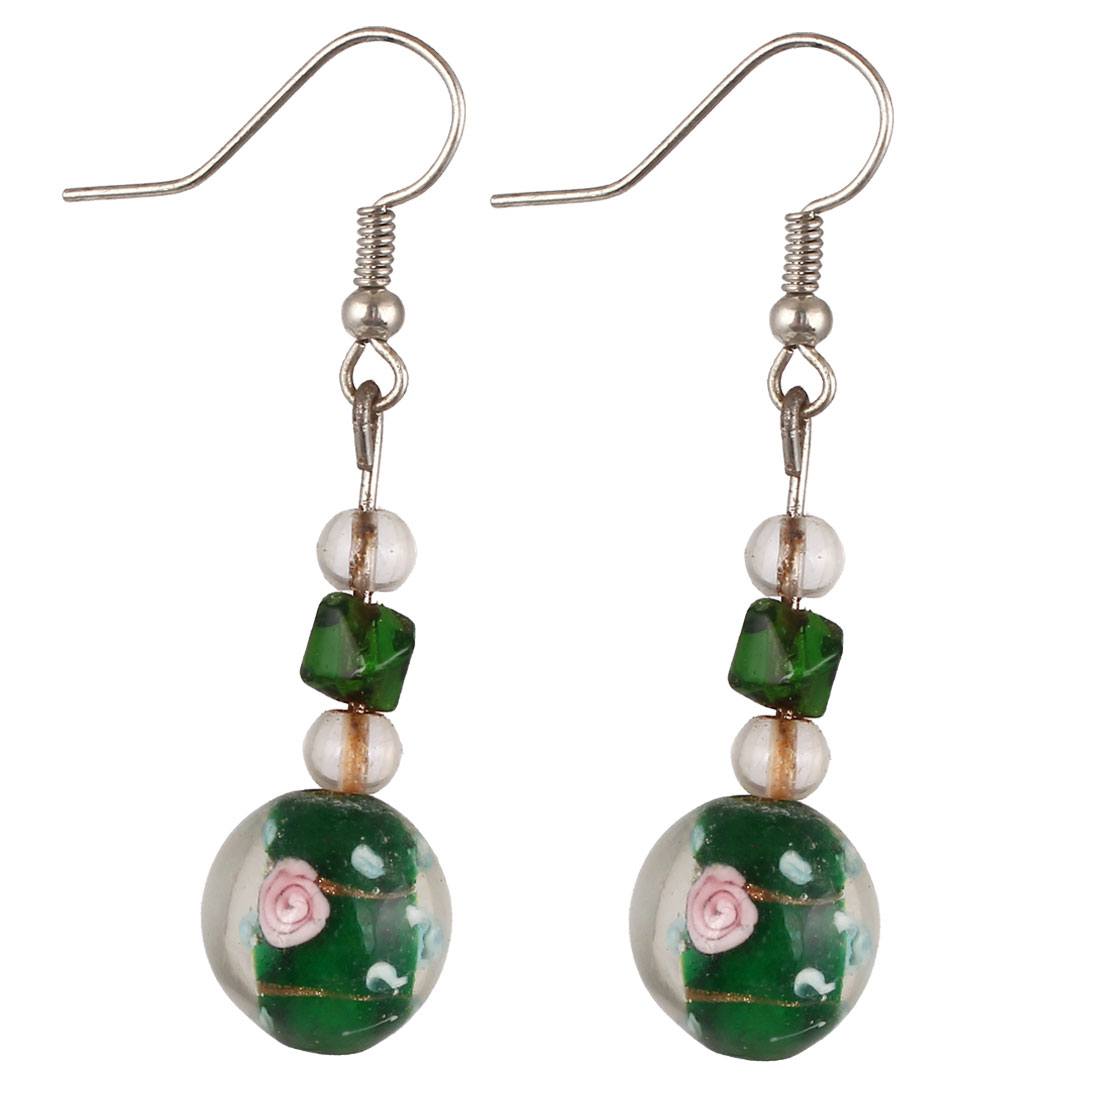 Women Plastic Flower Curves Pattern Dangling Rhombus Drop Hook Earrings Green Pair